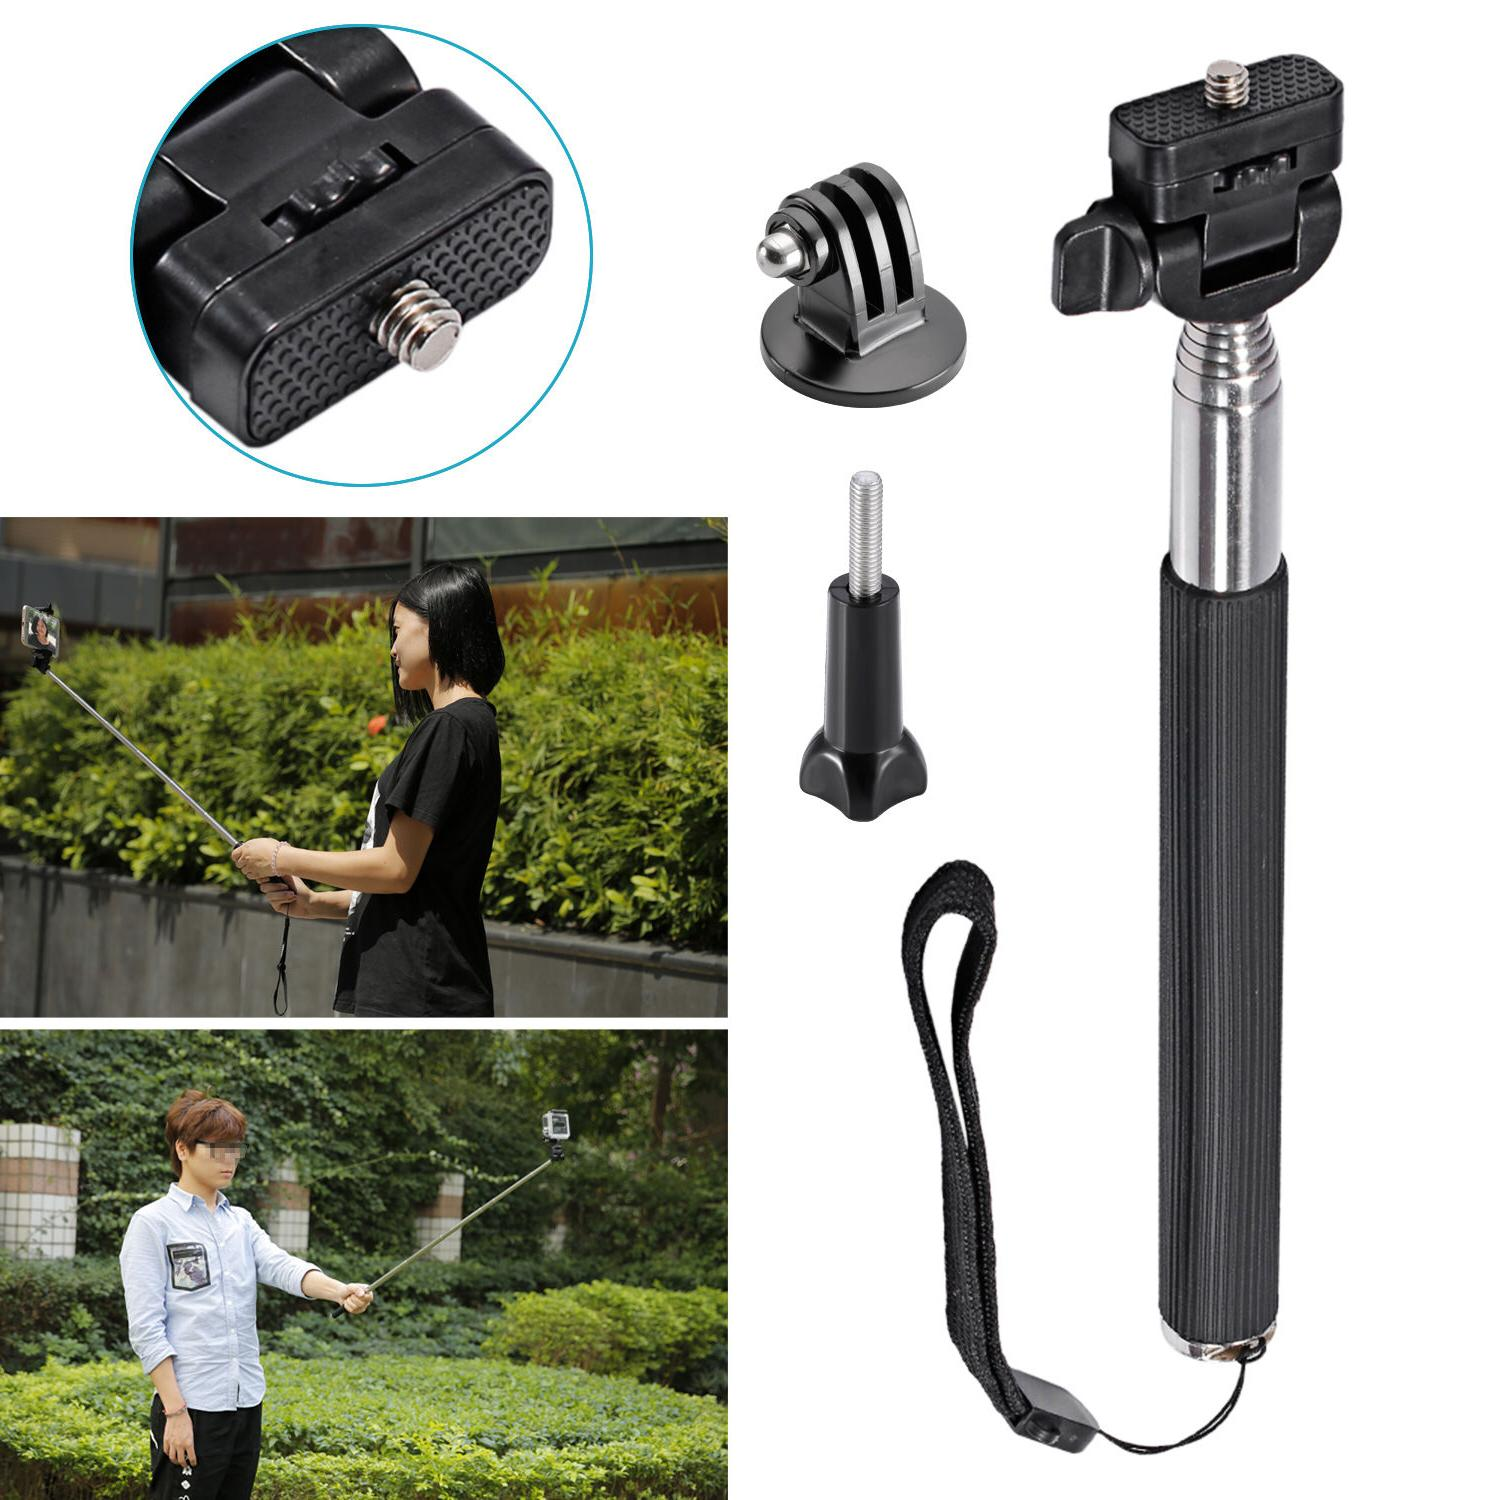 Neewer Accessories for GoPro 4 Black 3+